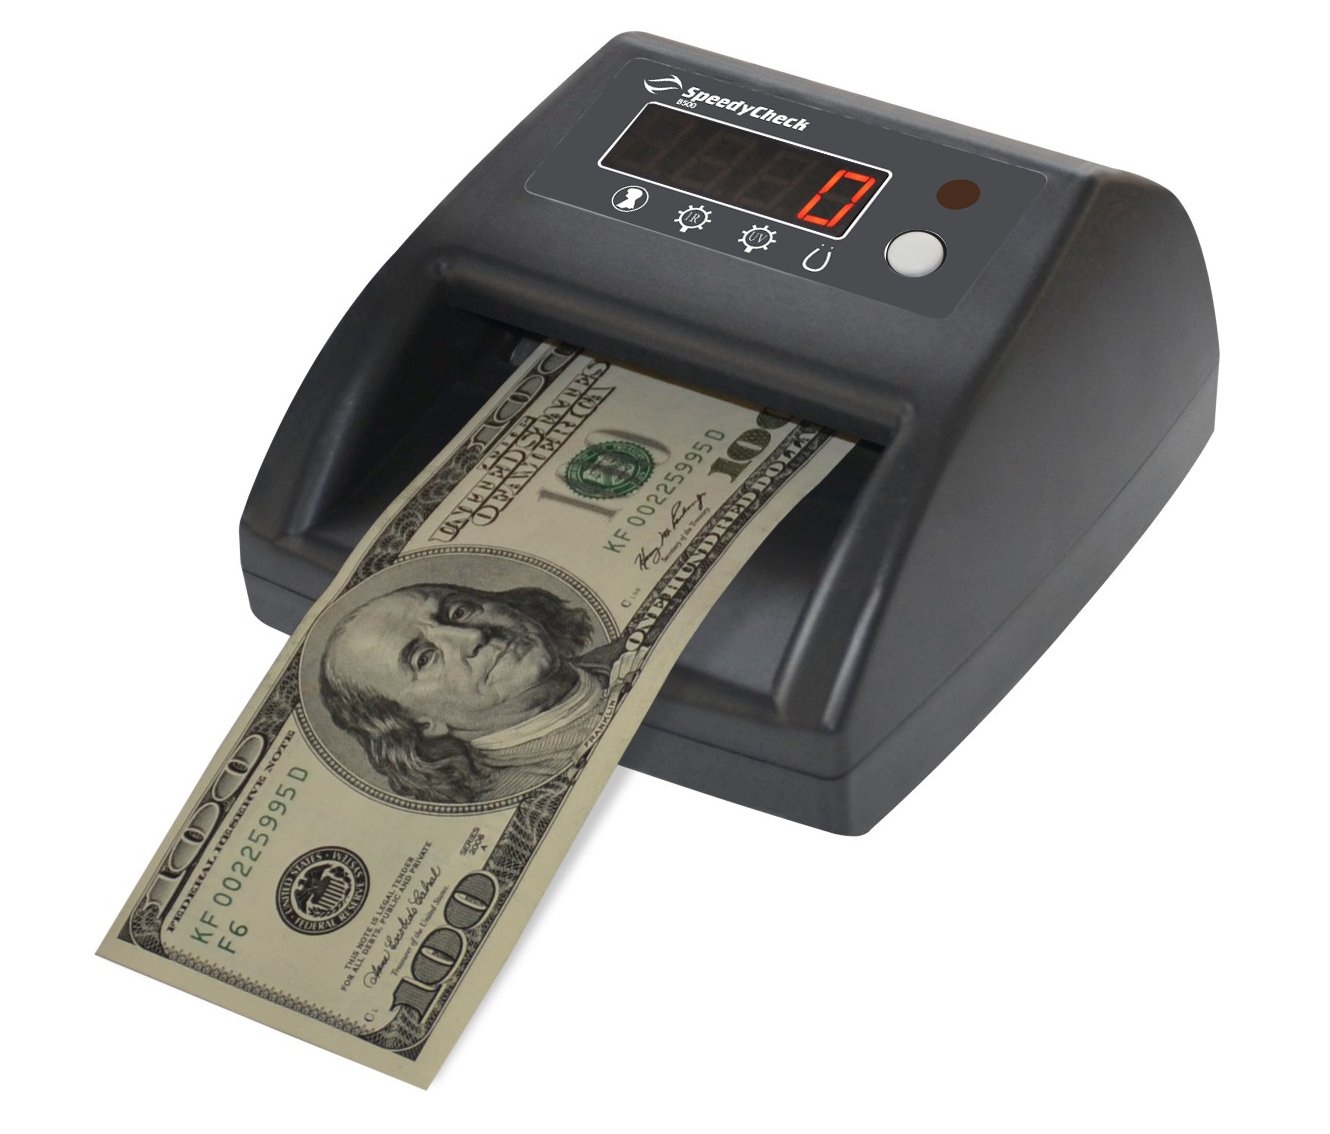 Automatic Counterfeit Bill Detector - SpeedyCheck B500